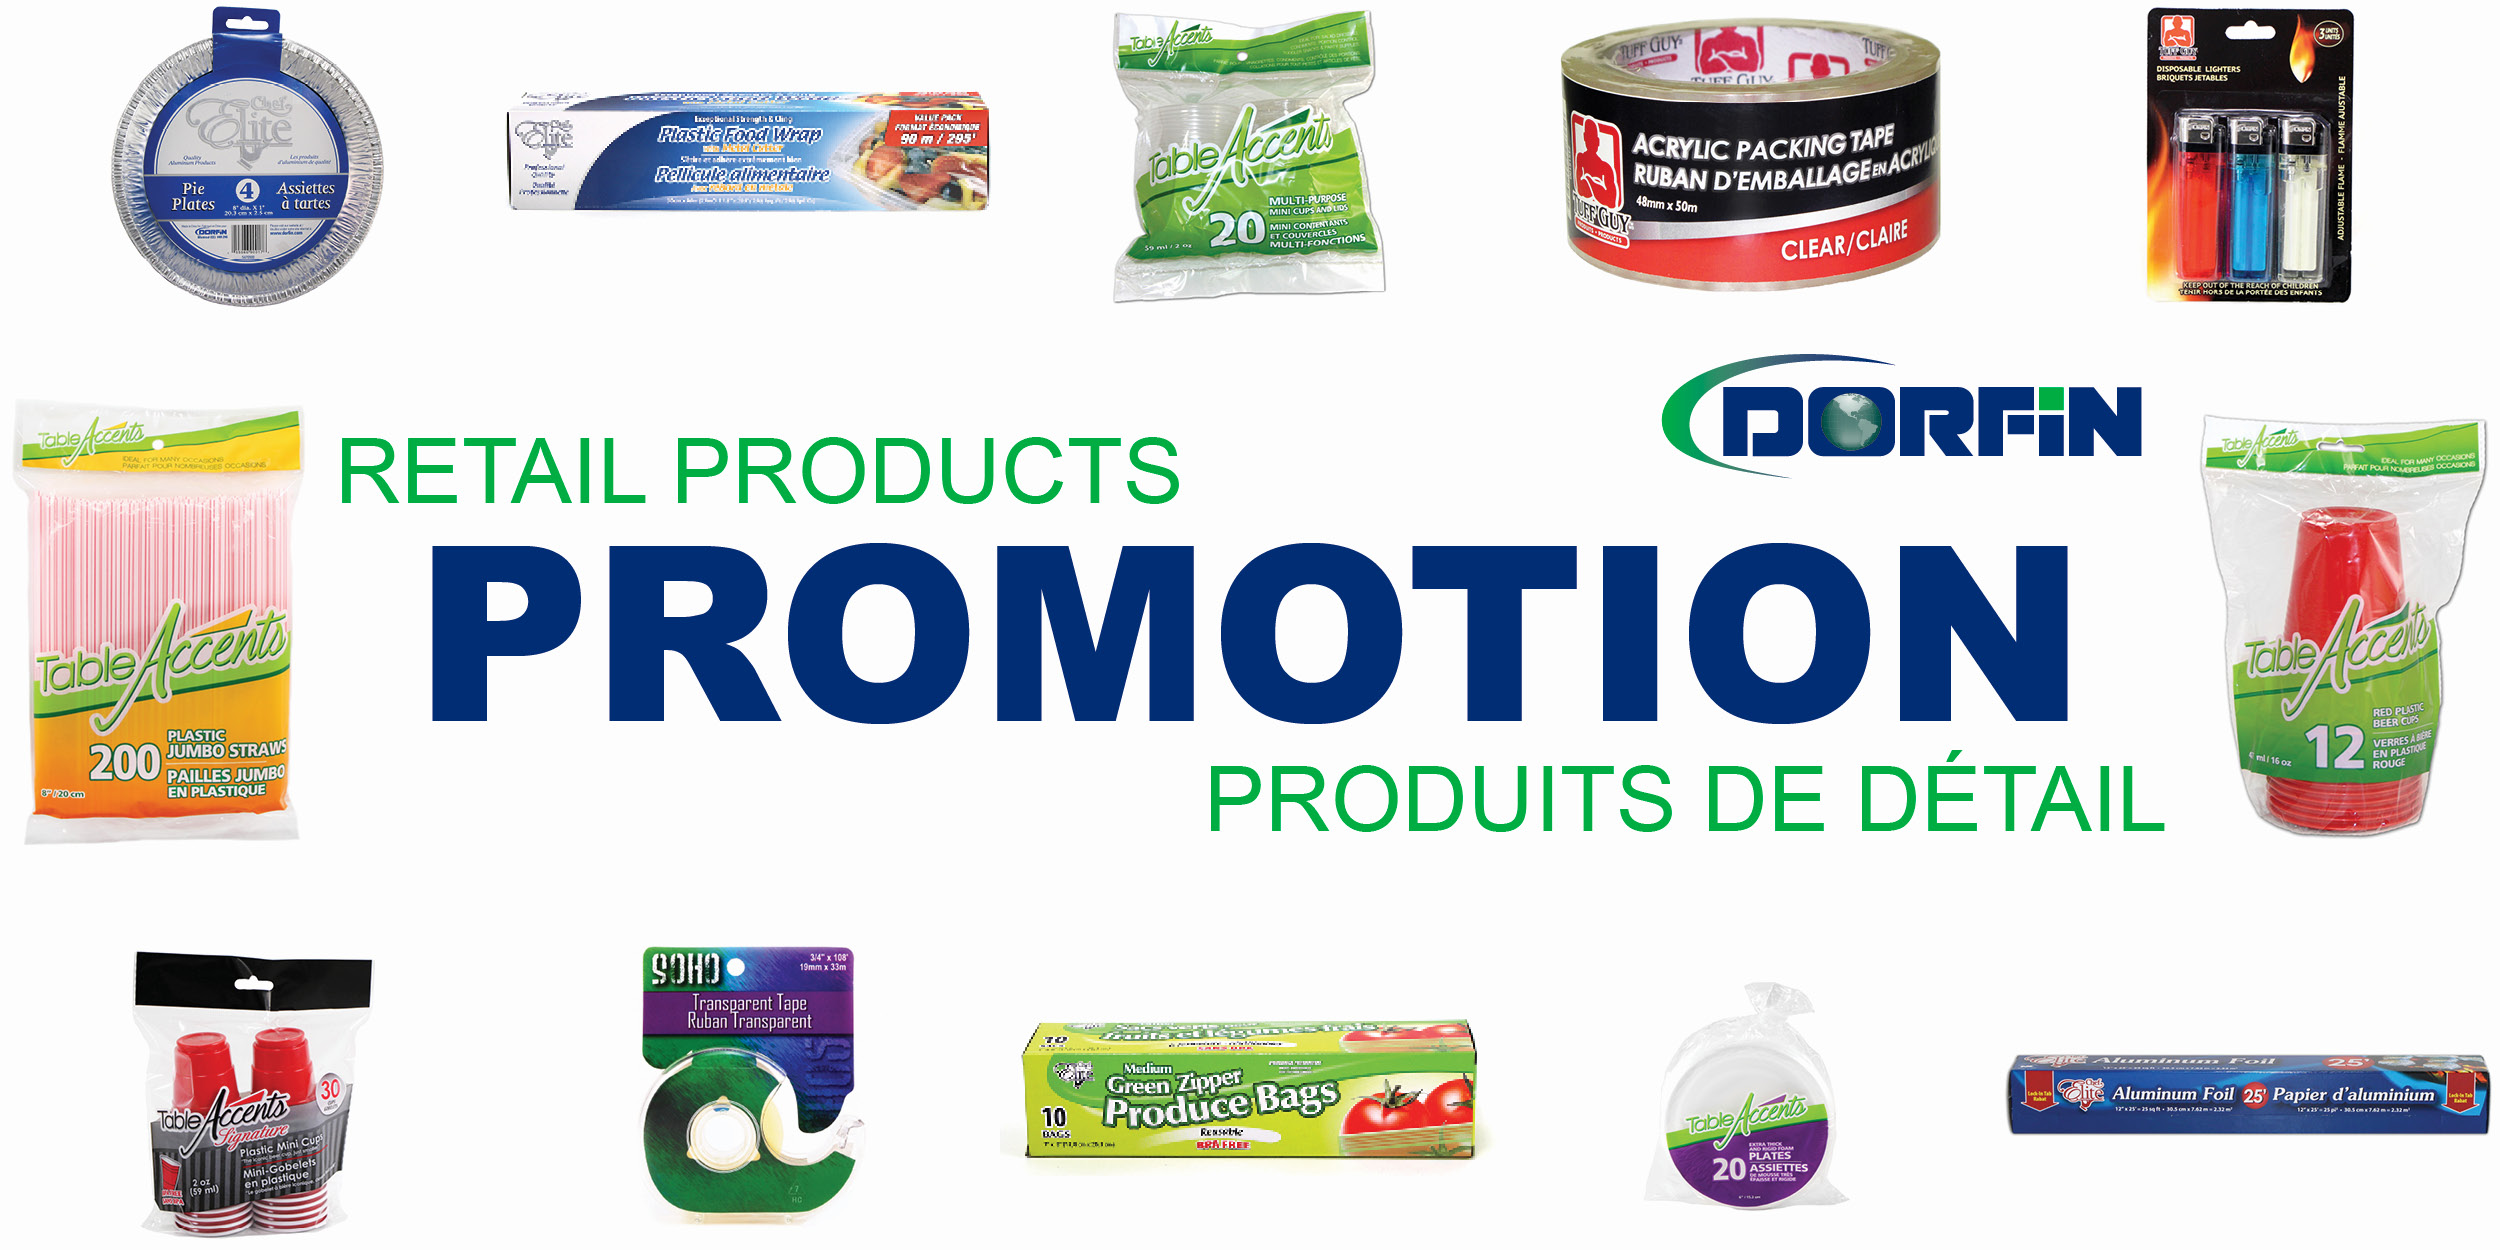 Retail Product Promotion